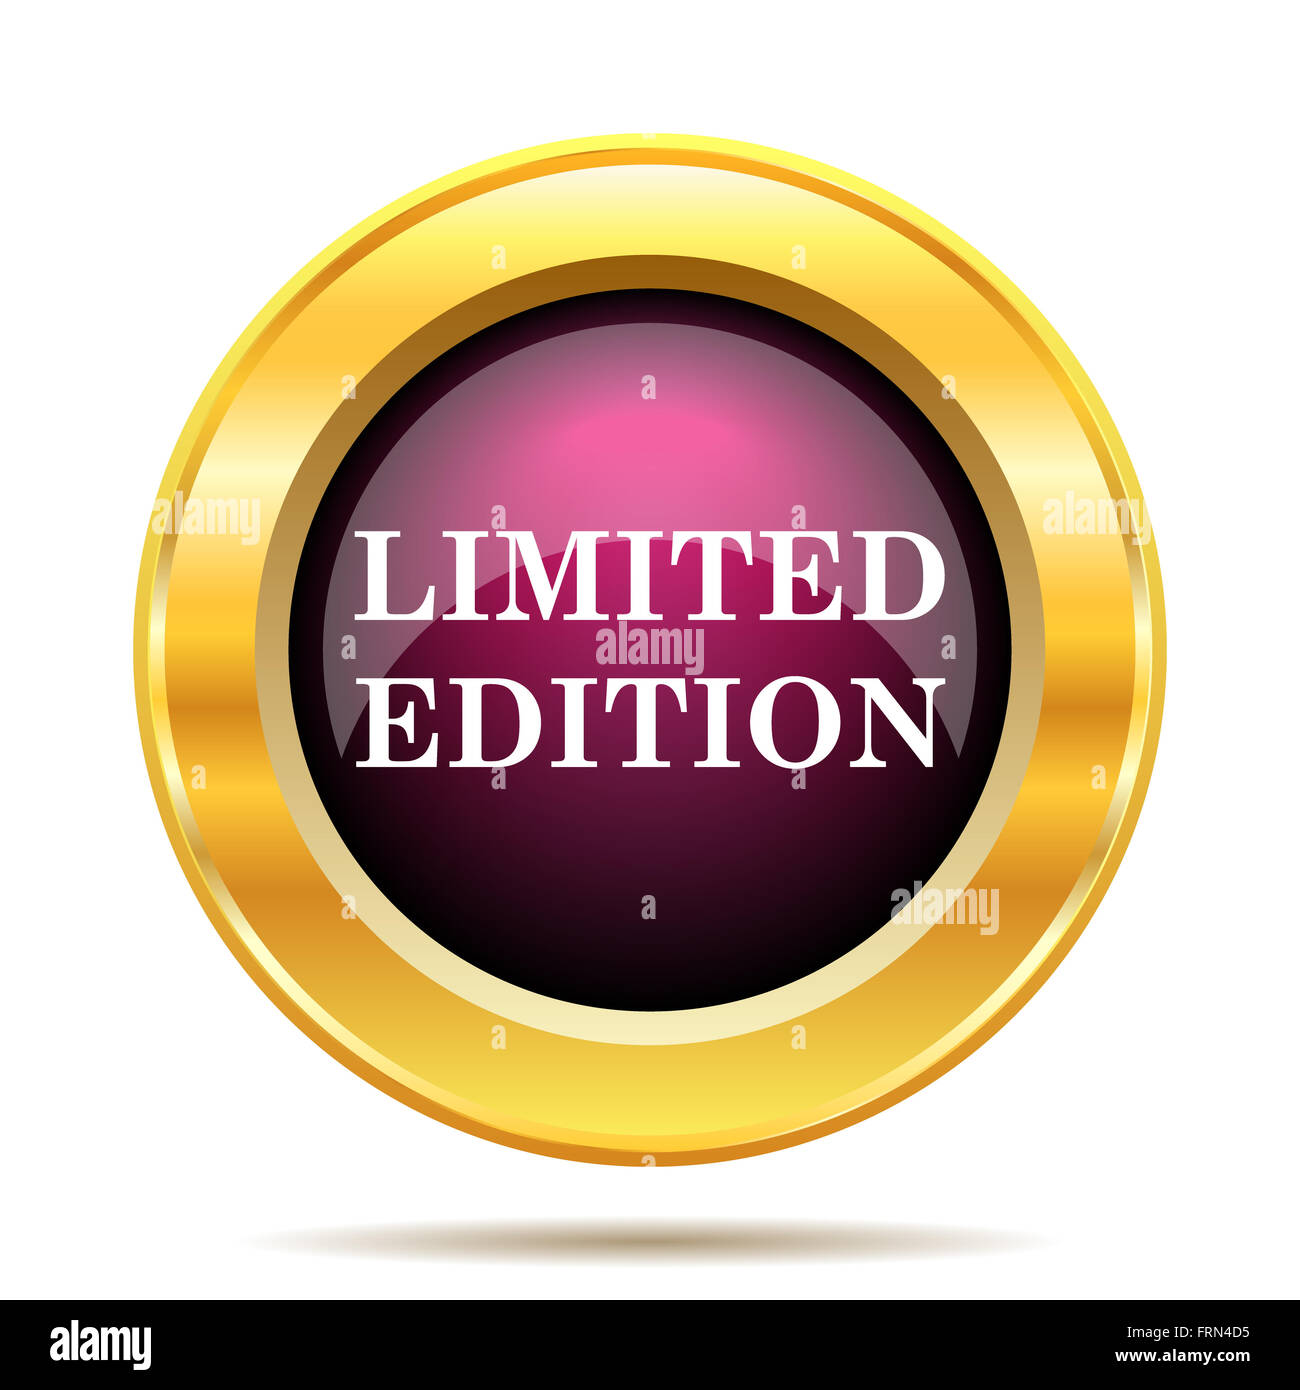 Limited edition icon. Internet button on white background ...